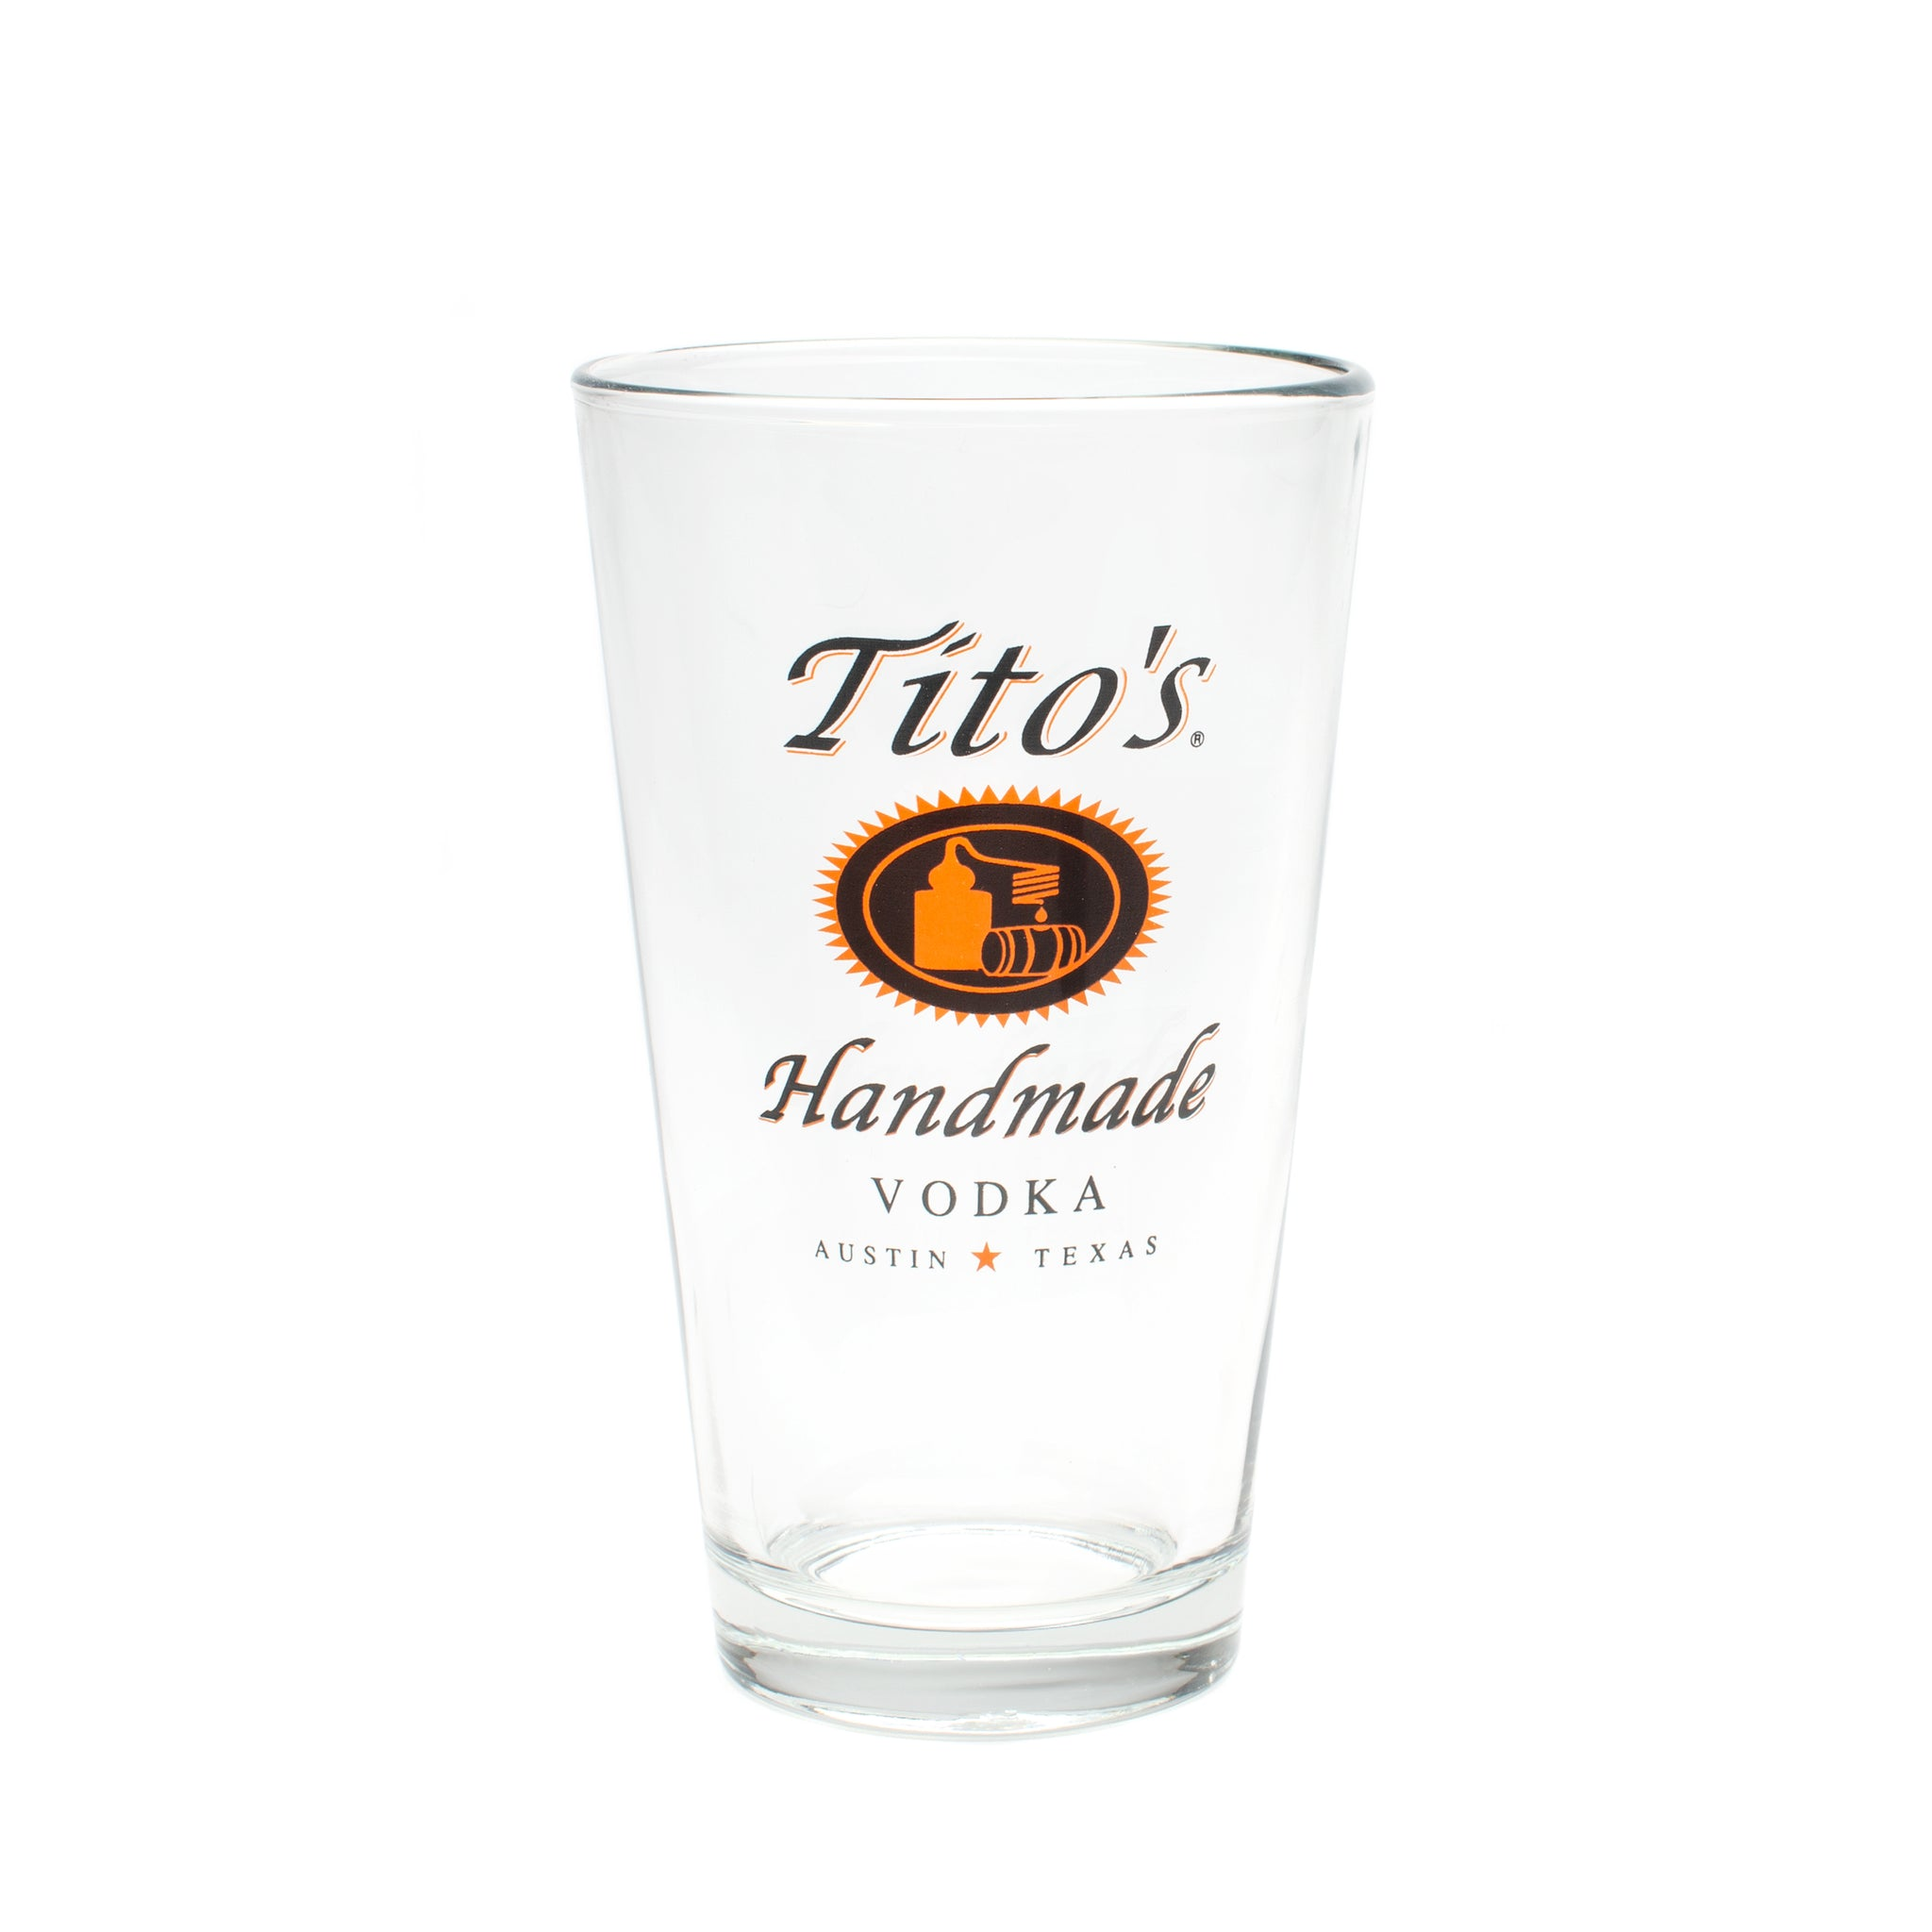 Pint glass with tito's handmade vodka logo on one side